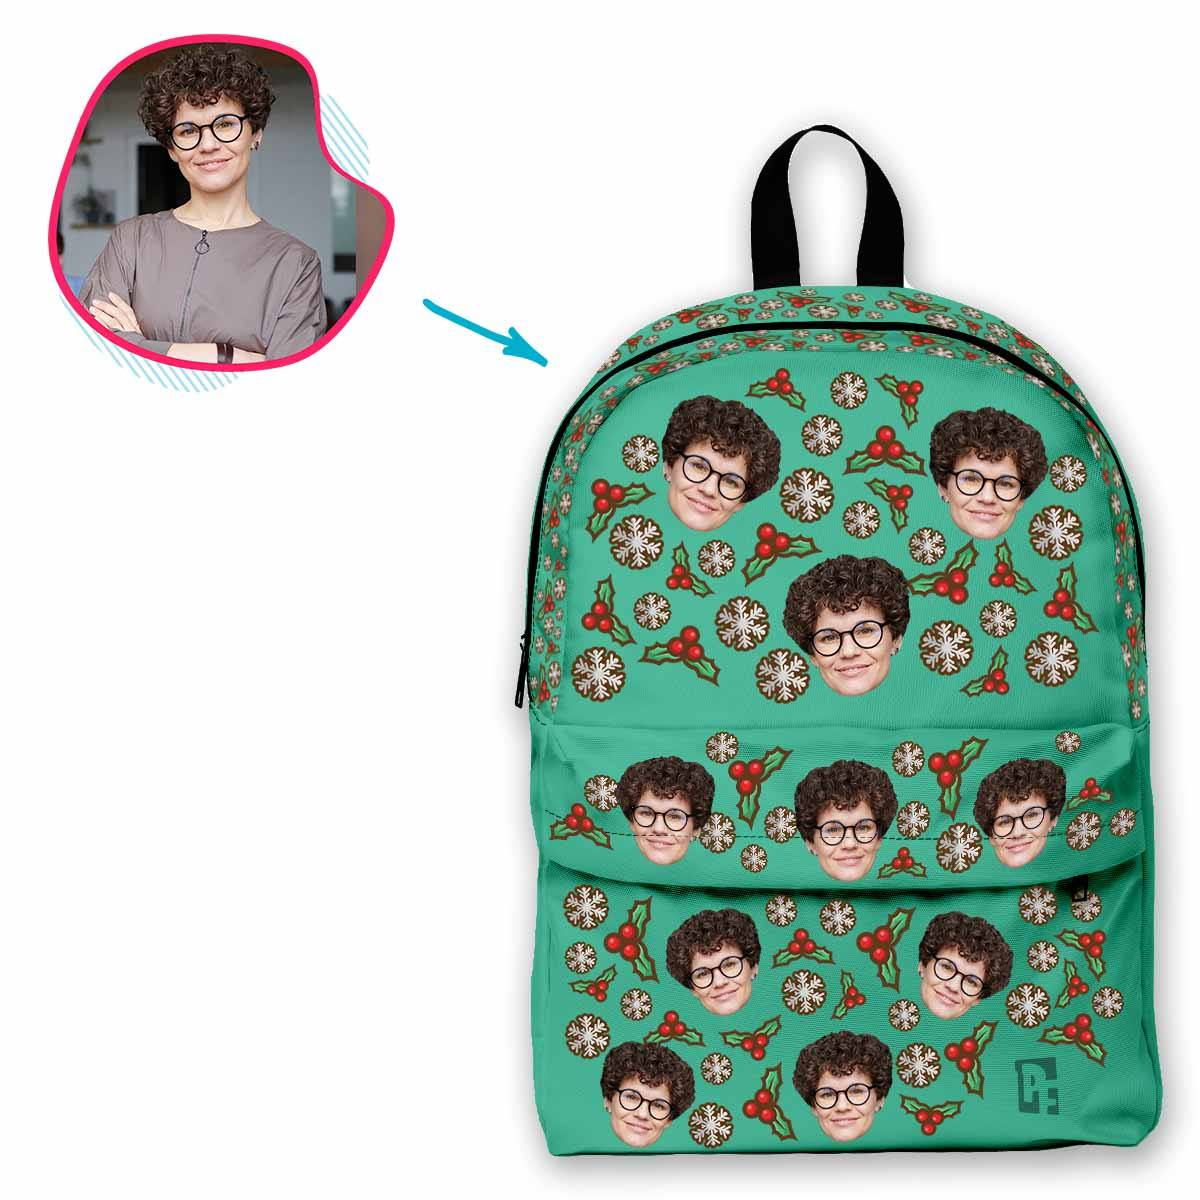 mint Mistletoe classic backpack personalized with photo of face printed on it